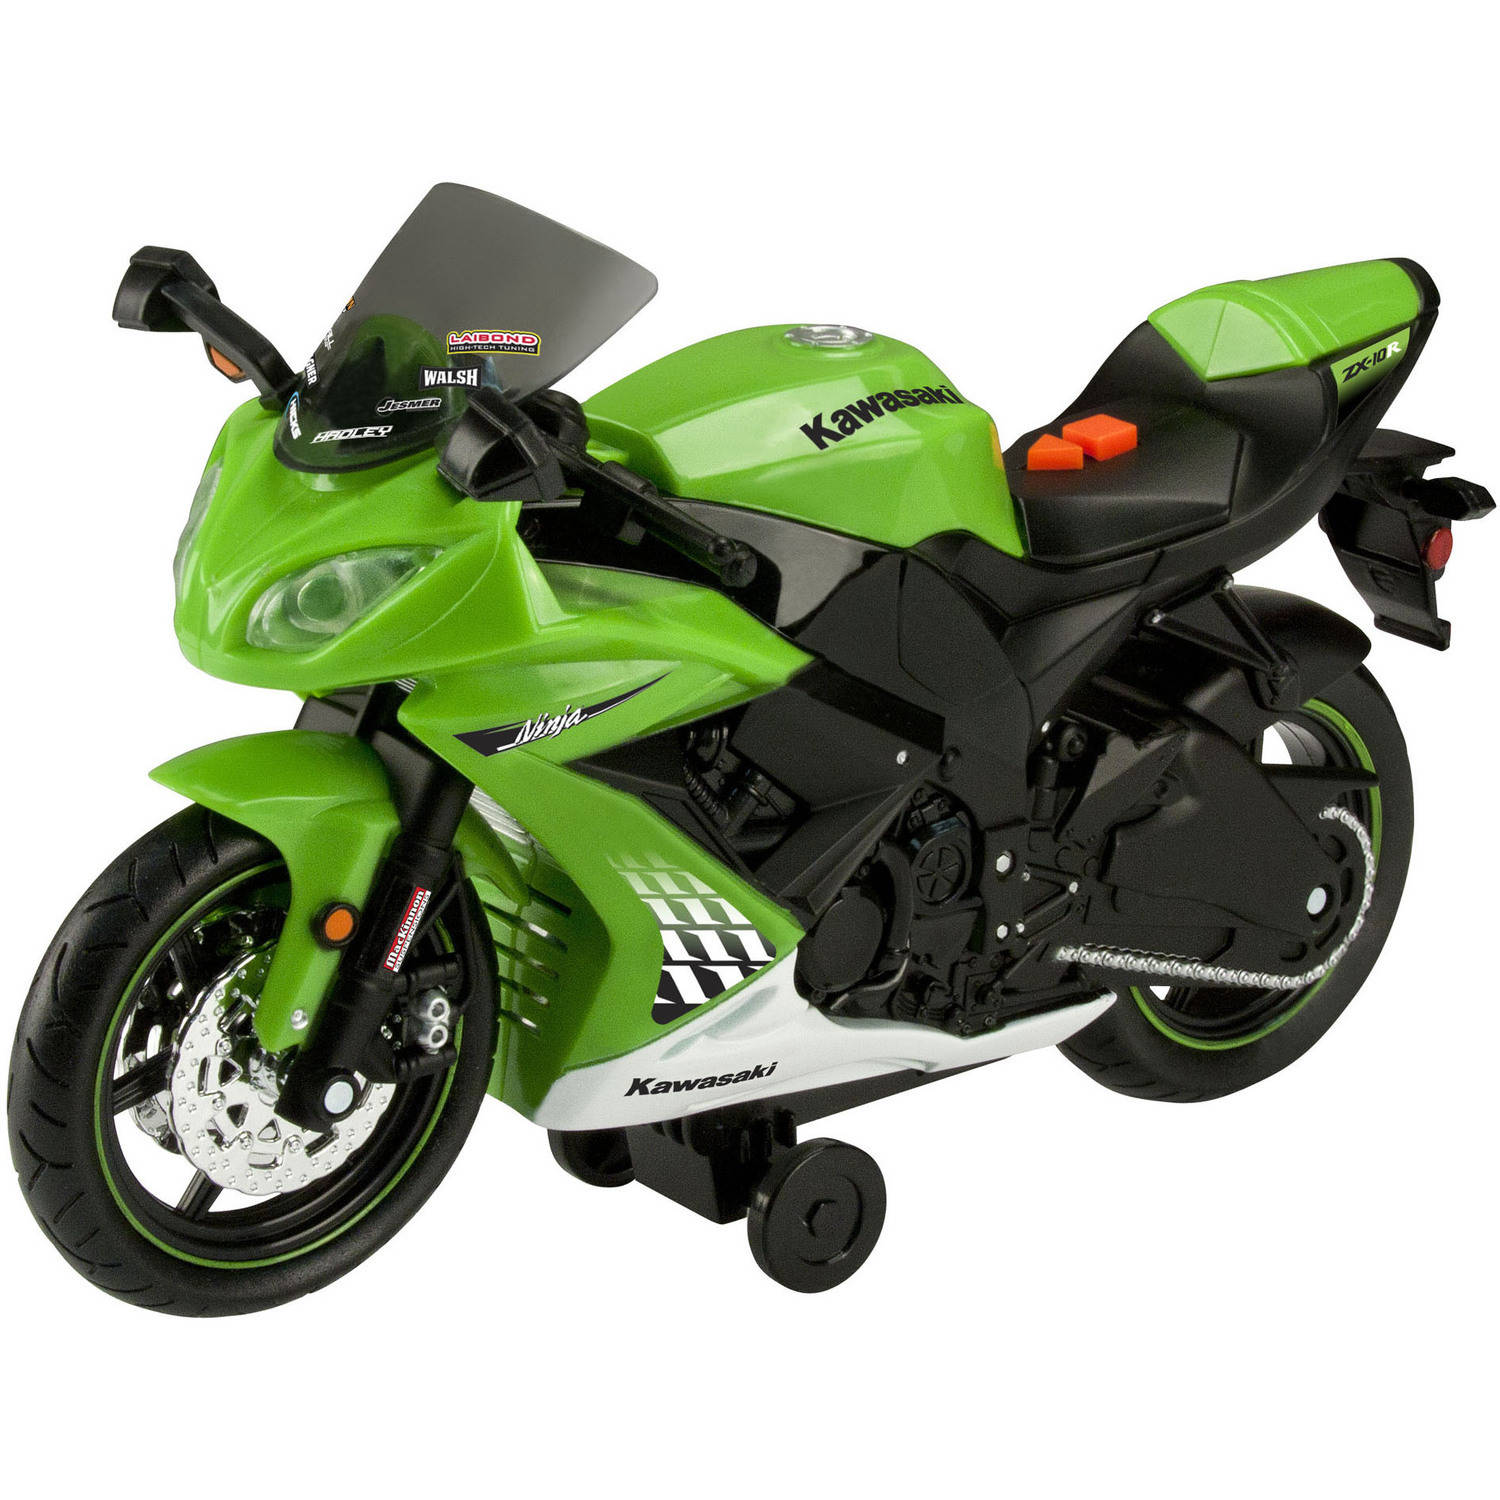 Adventure Force Kawasaki Ninja ZX-10R, Green